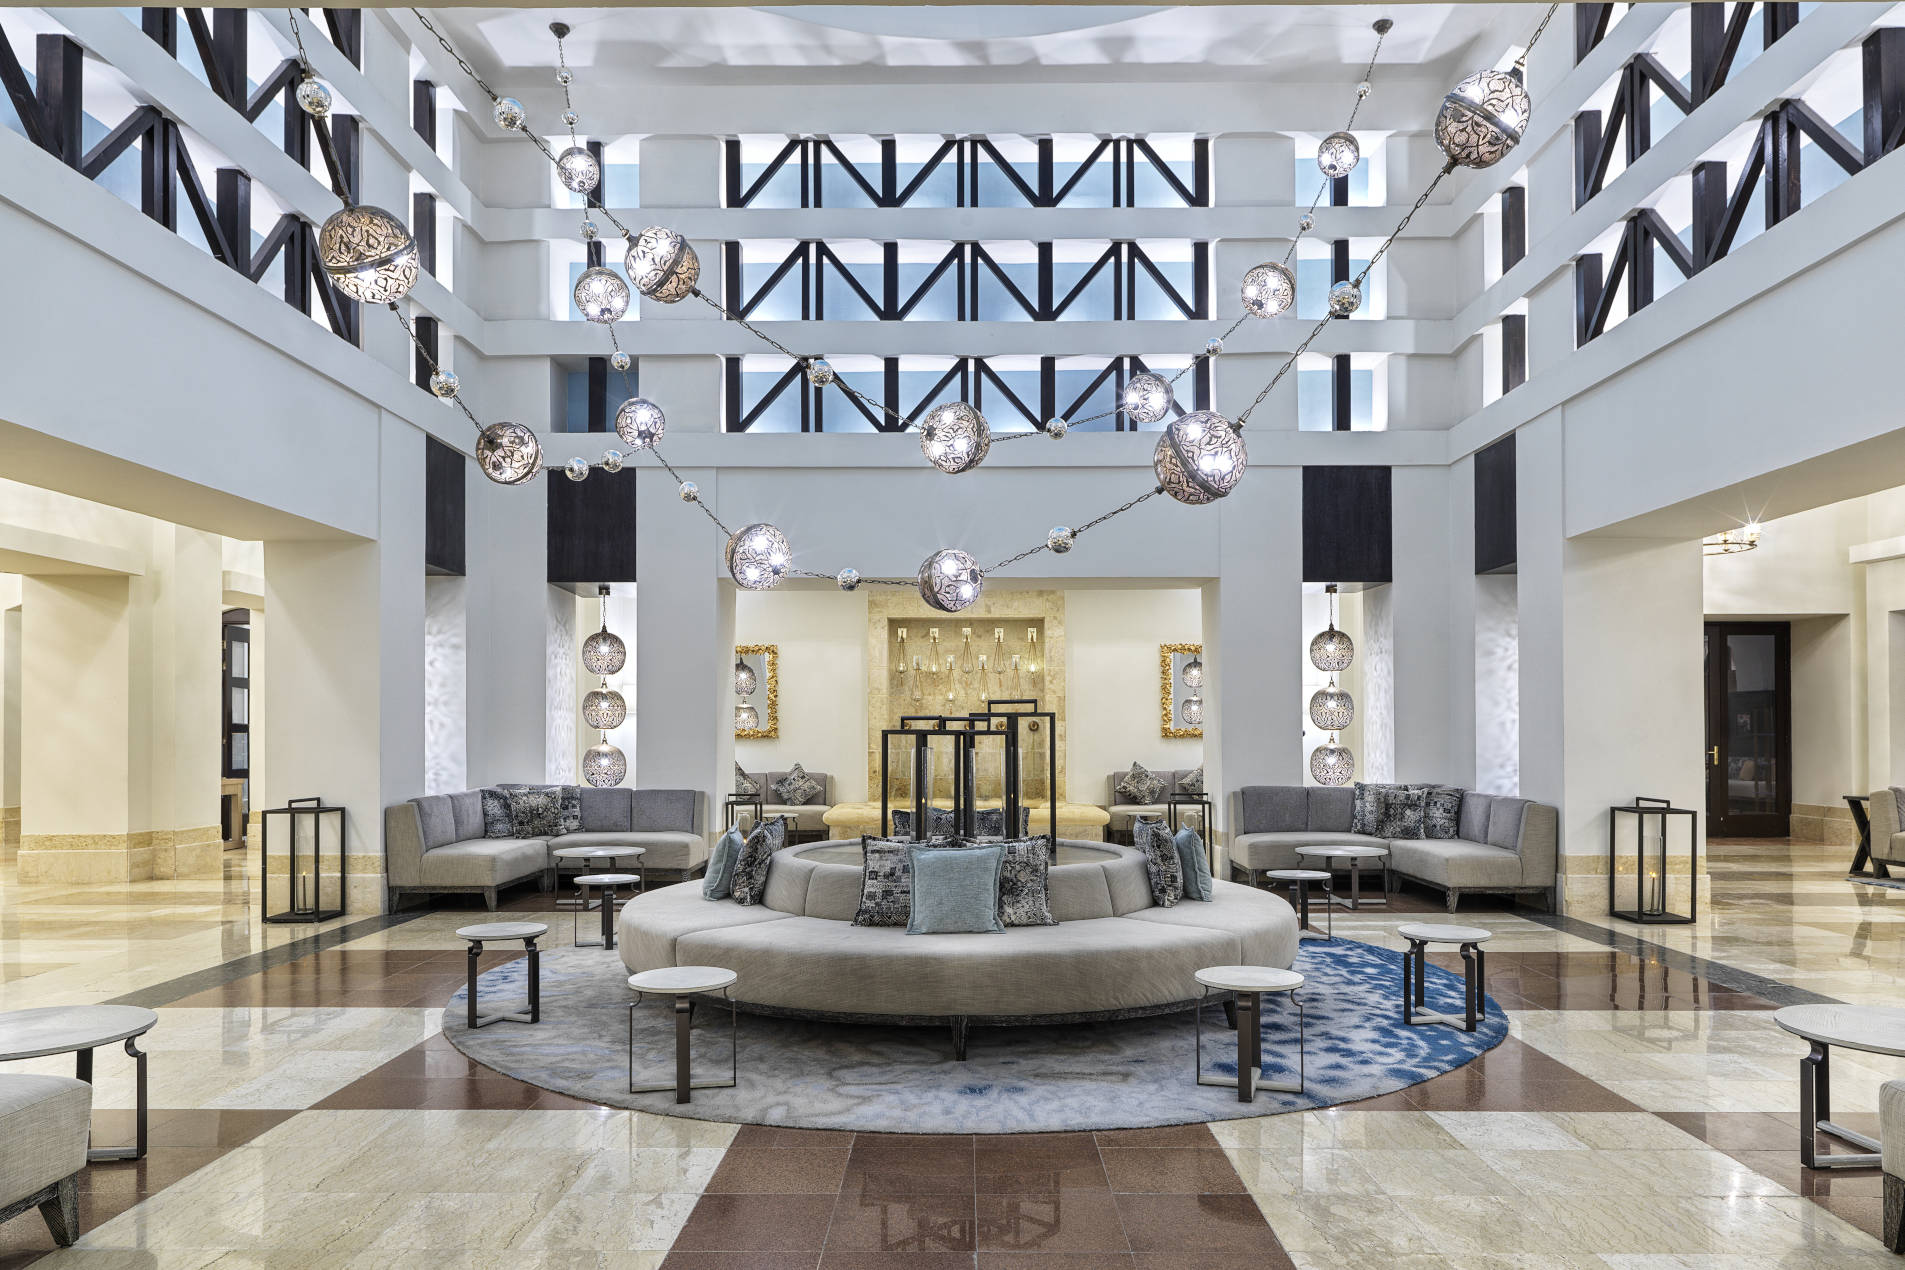 The lobby area with round sofa and authentic deocration of Sheraton Miramar El Gouna 5 stars hotel